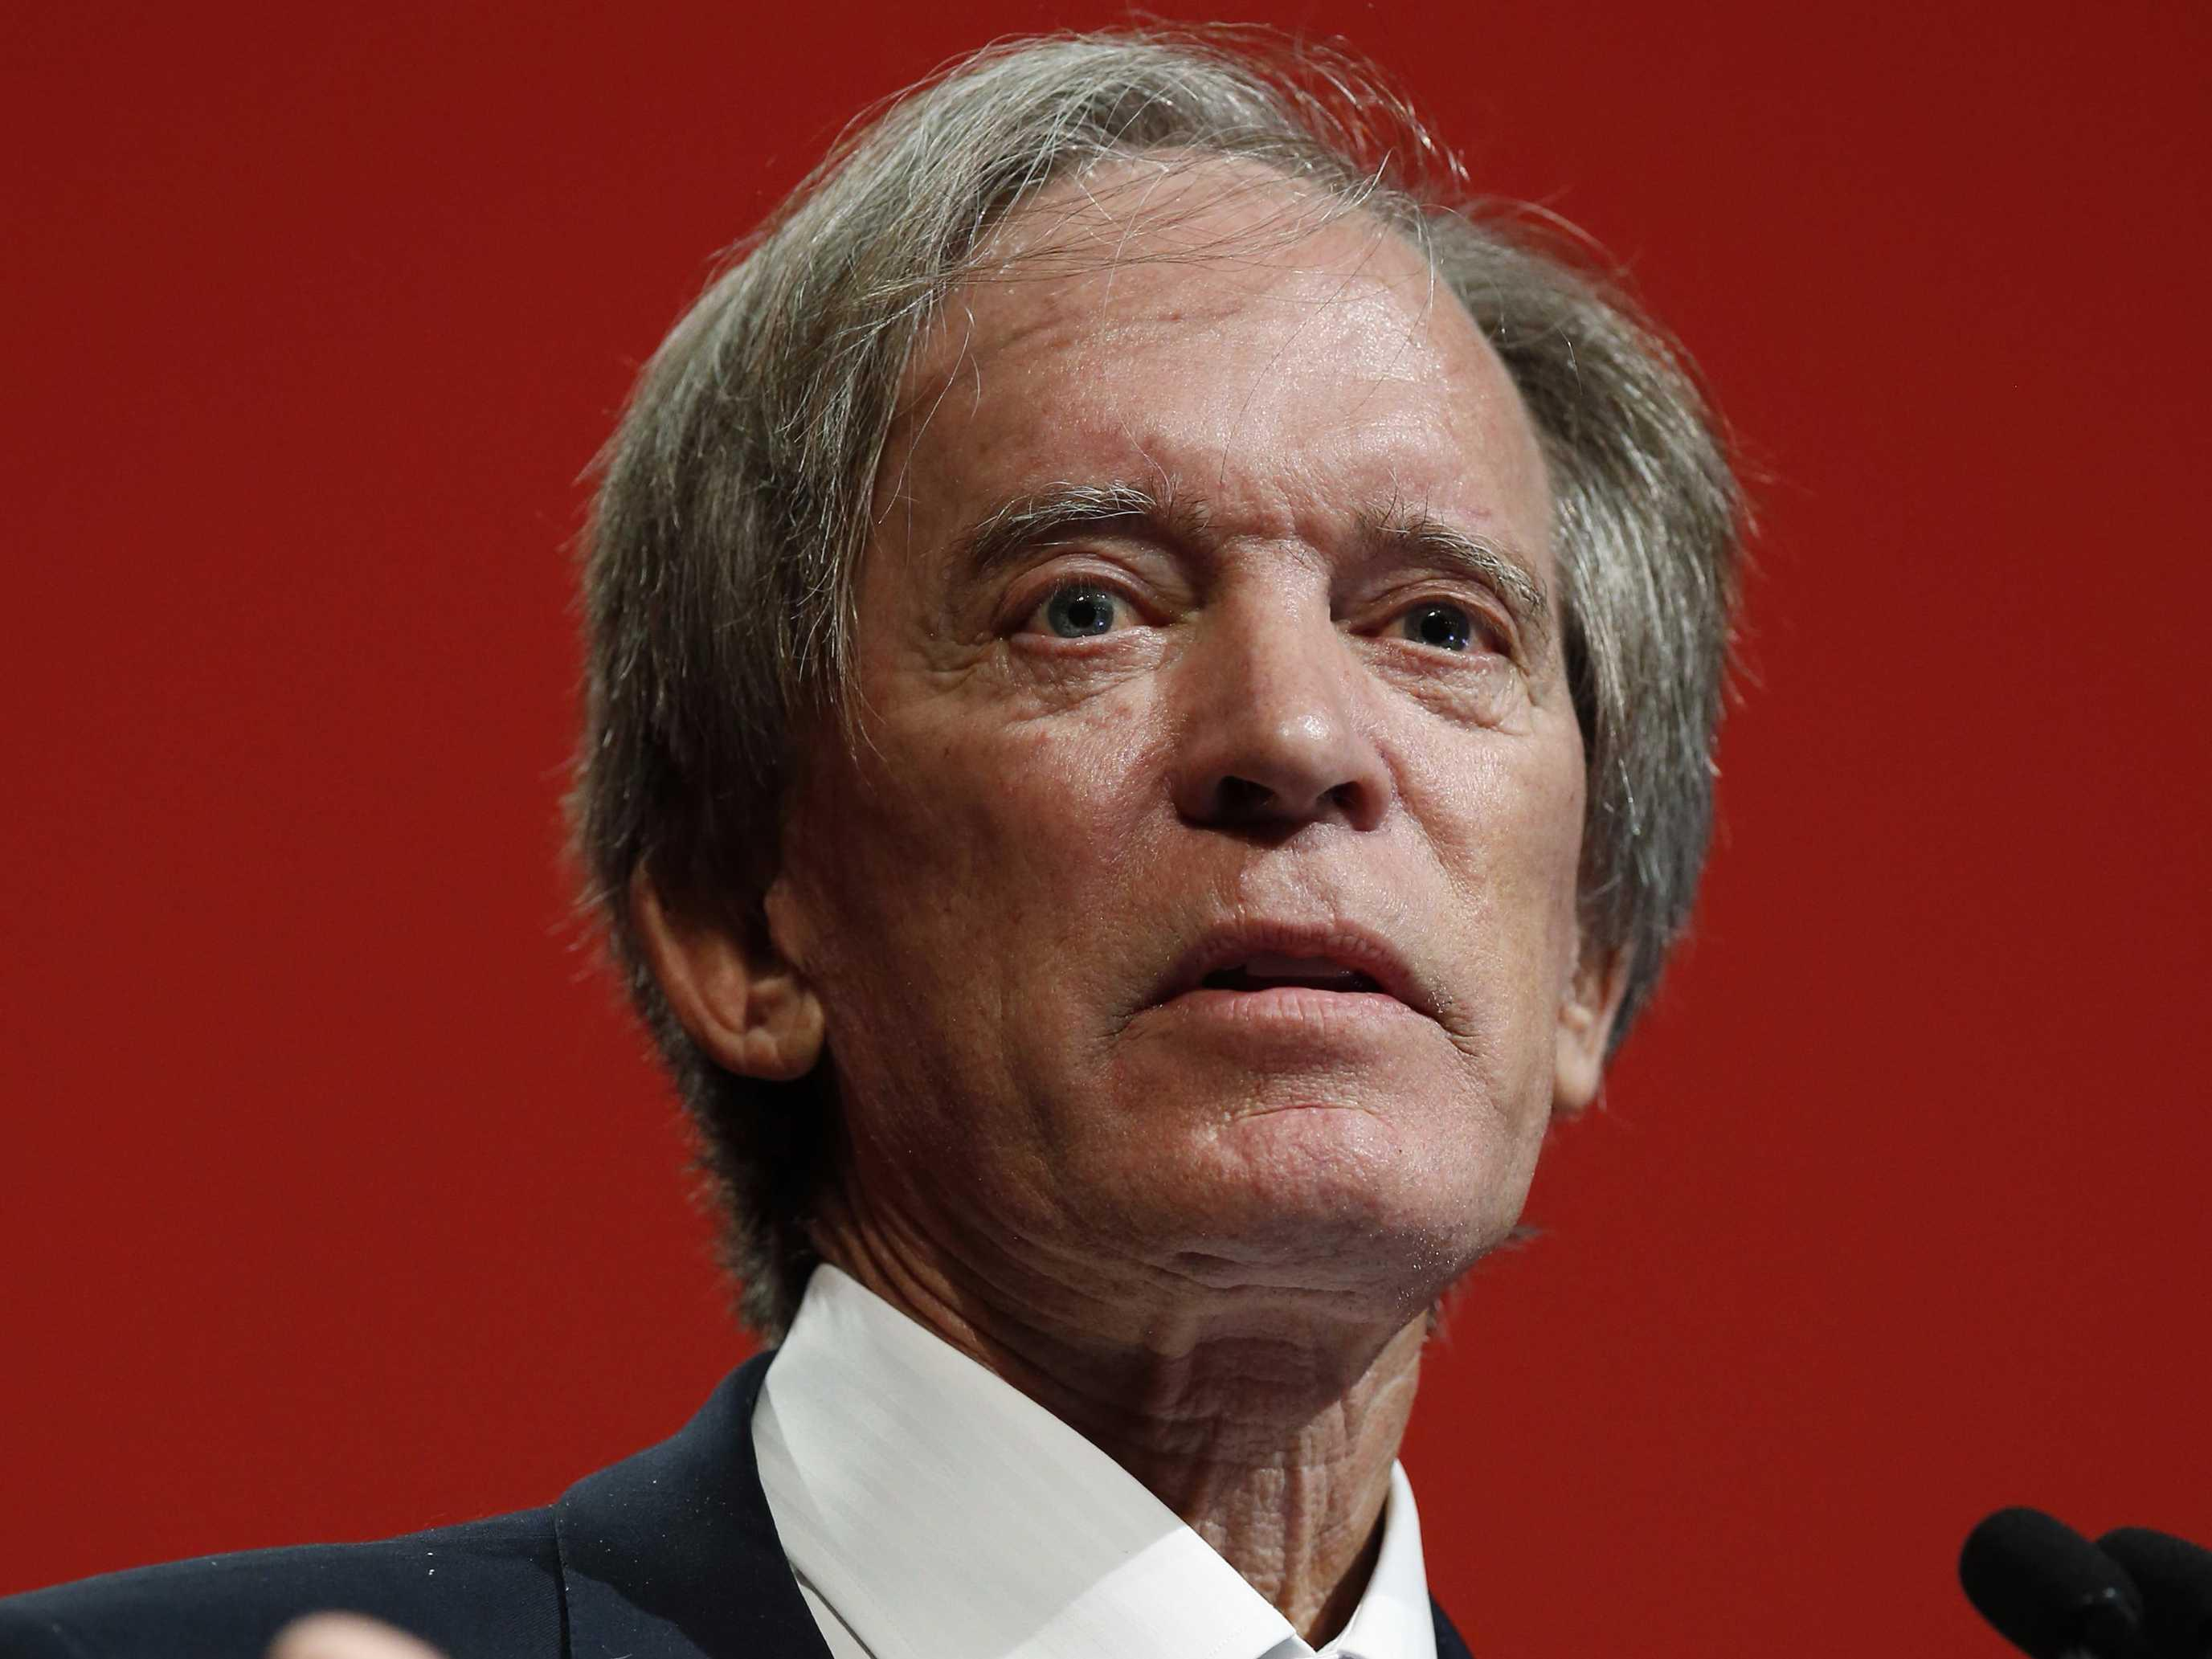 BILL GROSS: My 'short of a lifetime' was 'well timed but not necessarily well executed'